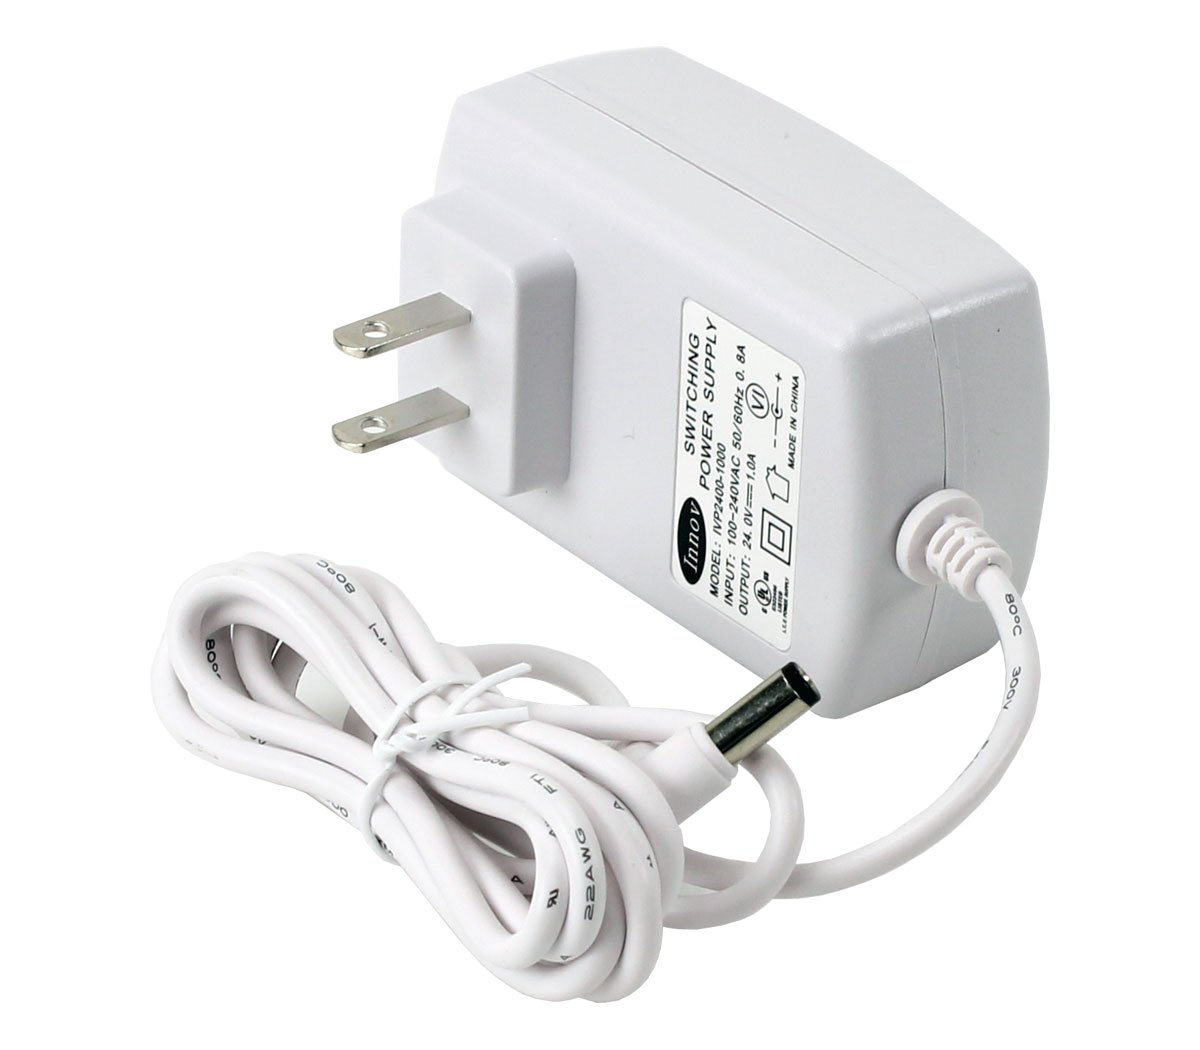 InvisiPure Wave Humidifier IP-2524 Replacement Part - Power Adapter